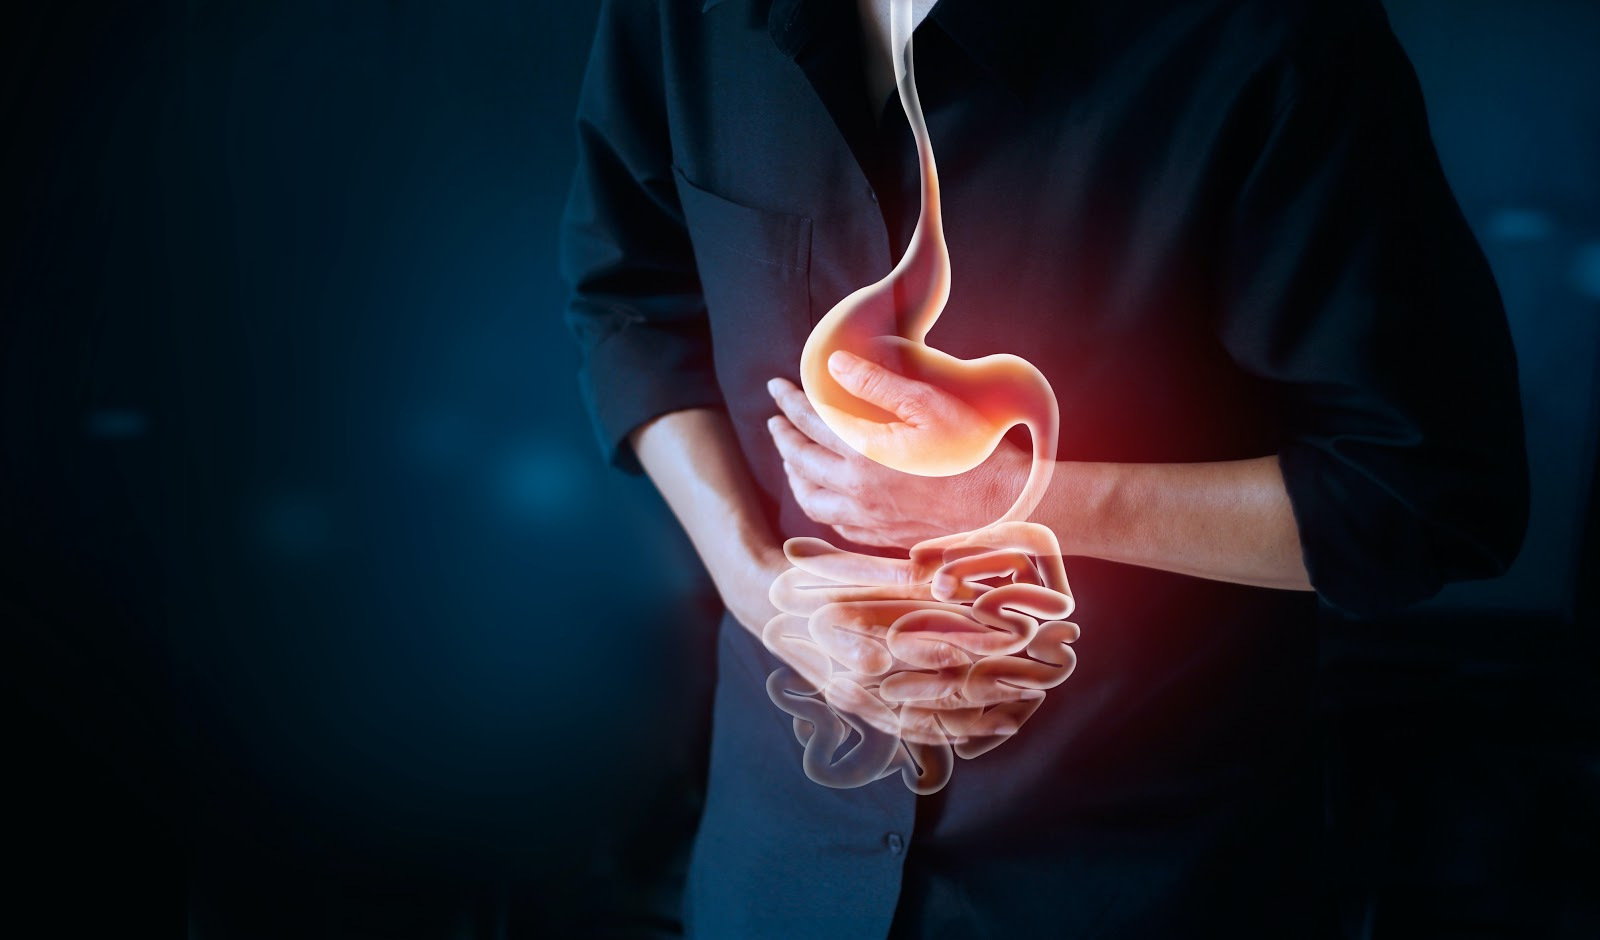 Restore Gut Health: Image of a person with a painful stomach ache